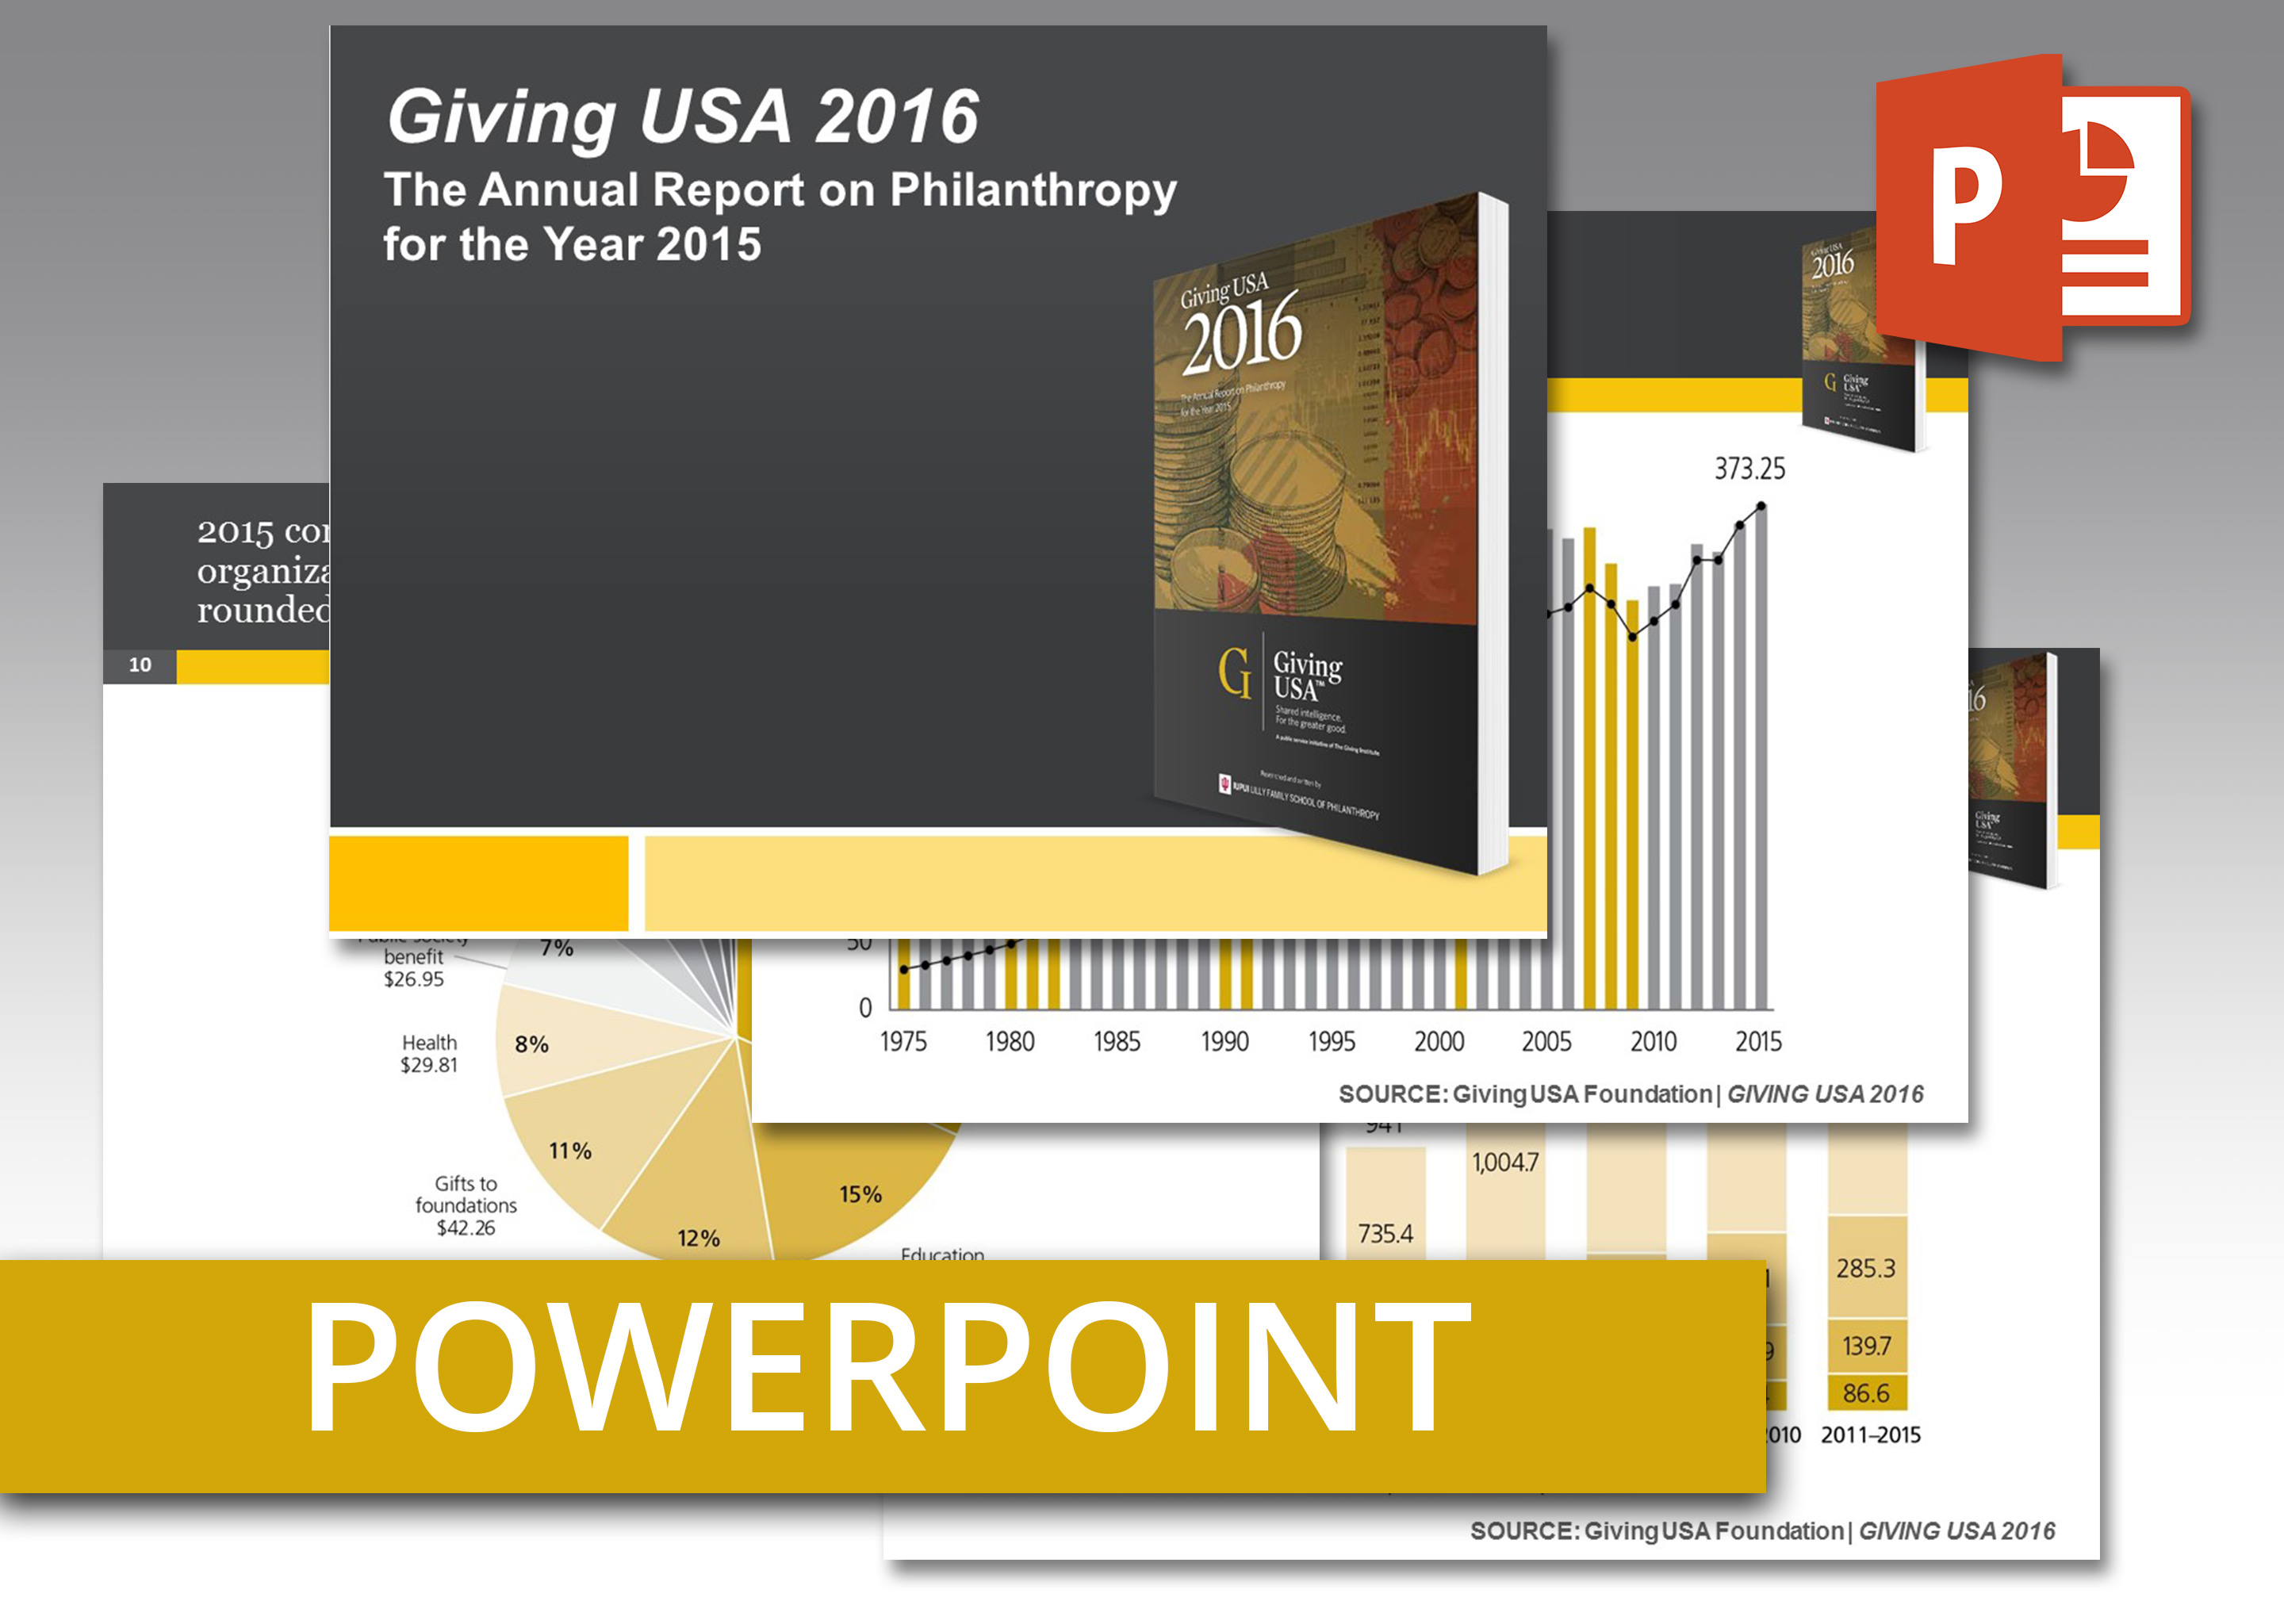 Coolmathgamesus  Mesmerizing Giving Usa  Powerpoint An Easytouse Presentation Of Report  With Lovable Giving Usa  Powerpoint An Easytouse Presentation Of Report Findings Including Talking Points With Nice Powerpoint Smart Art Templates Also Free Animated Templates For Powerpoint  In Addition Microsoft Powerpoint Presentation Free Download  And Resilience Powerpoint Presentation As Well As Powerpoint Adobe Additionally Download Template Powerpoint  From Givingusaorg With Coolmathgamesus  Lovable Giving Usa  Powerpoint An Easytouse Presentation Of Report  With Nice Giving Usa  Powerpoint An Easytouse Presentation Of Report Findings Including Talking Points And Mesmerizing Powerpoint Smart Art Templates Also Free Animated Templates For Powerpoint  In Addition Microsoft Powerpoint Presentation Free Download  From Givingusaorg